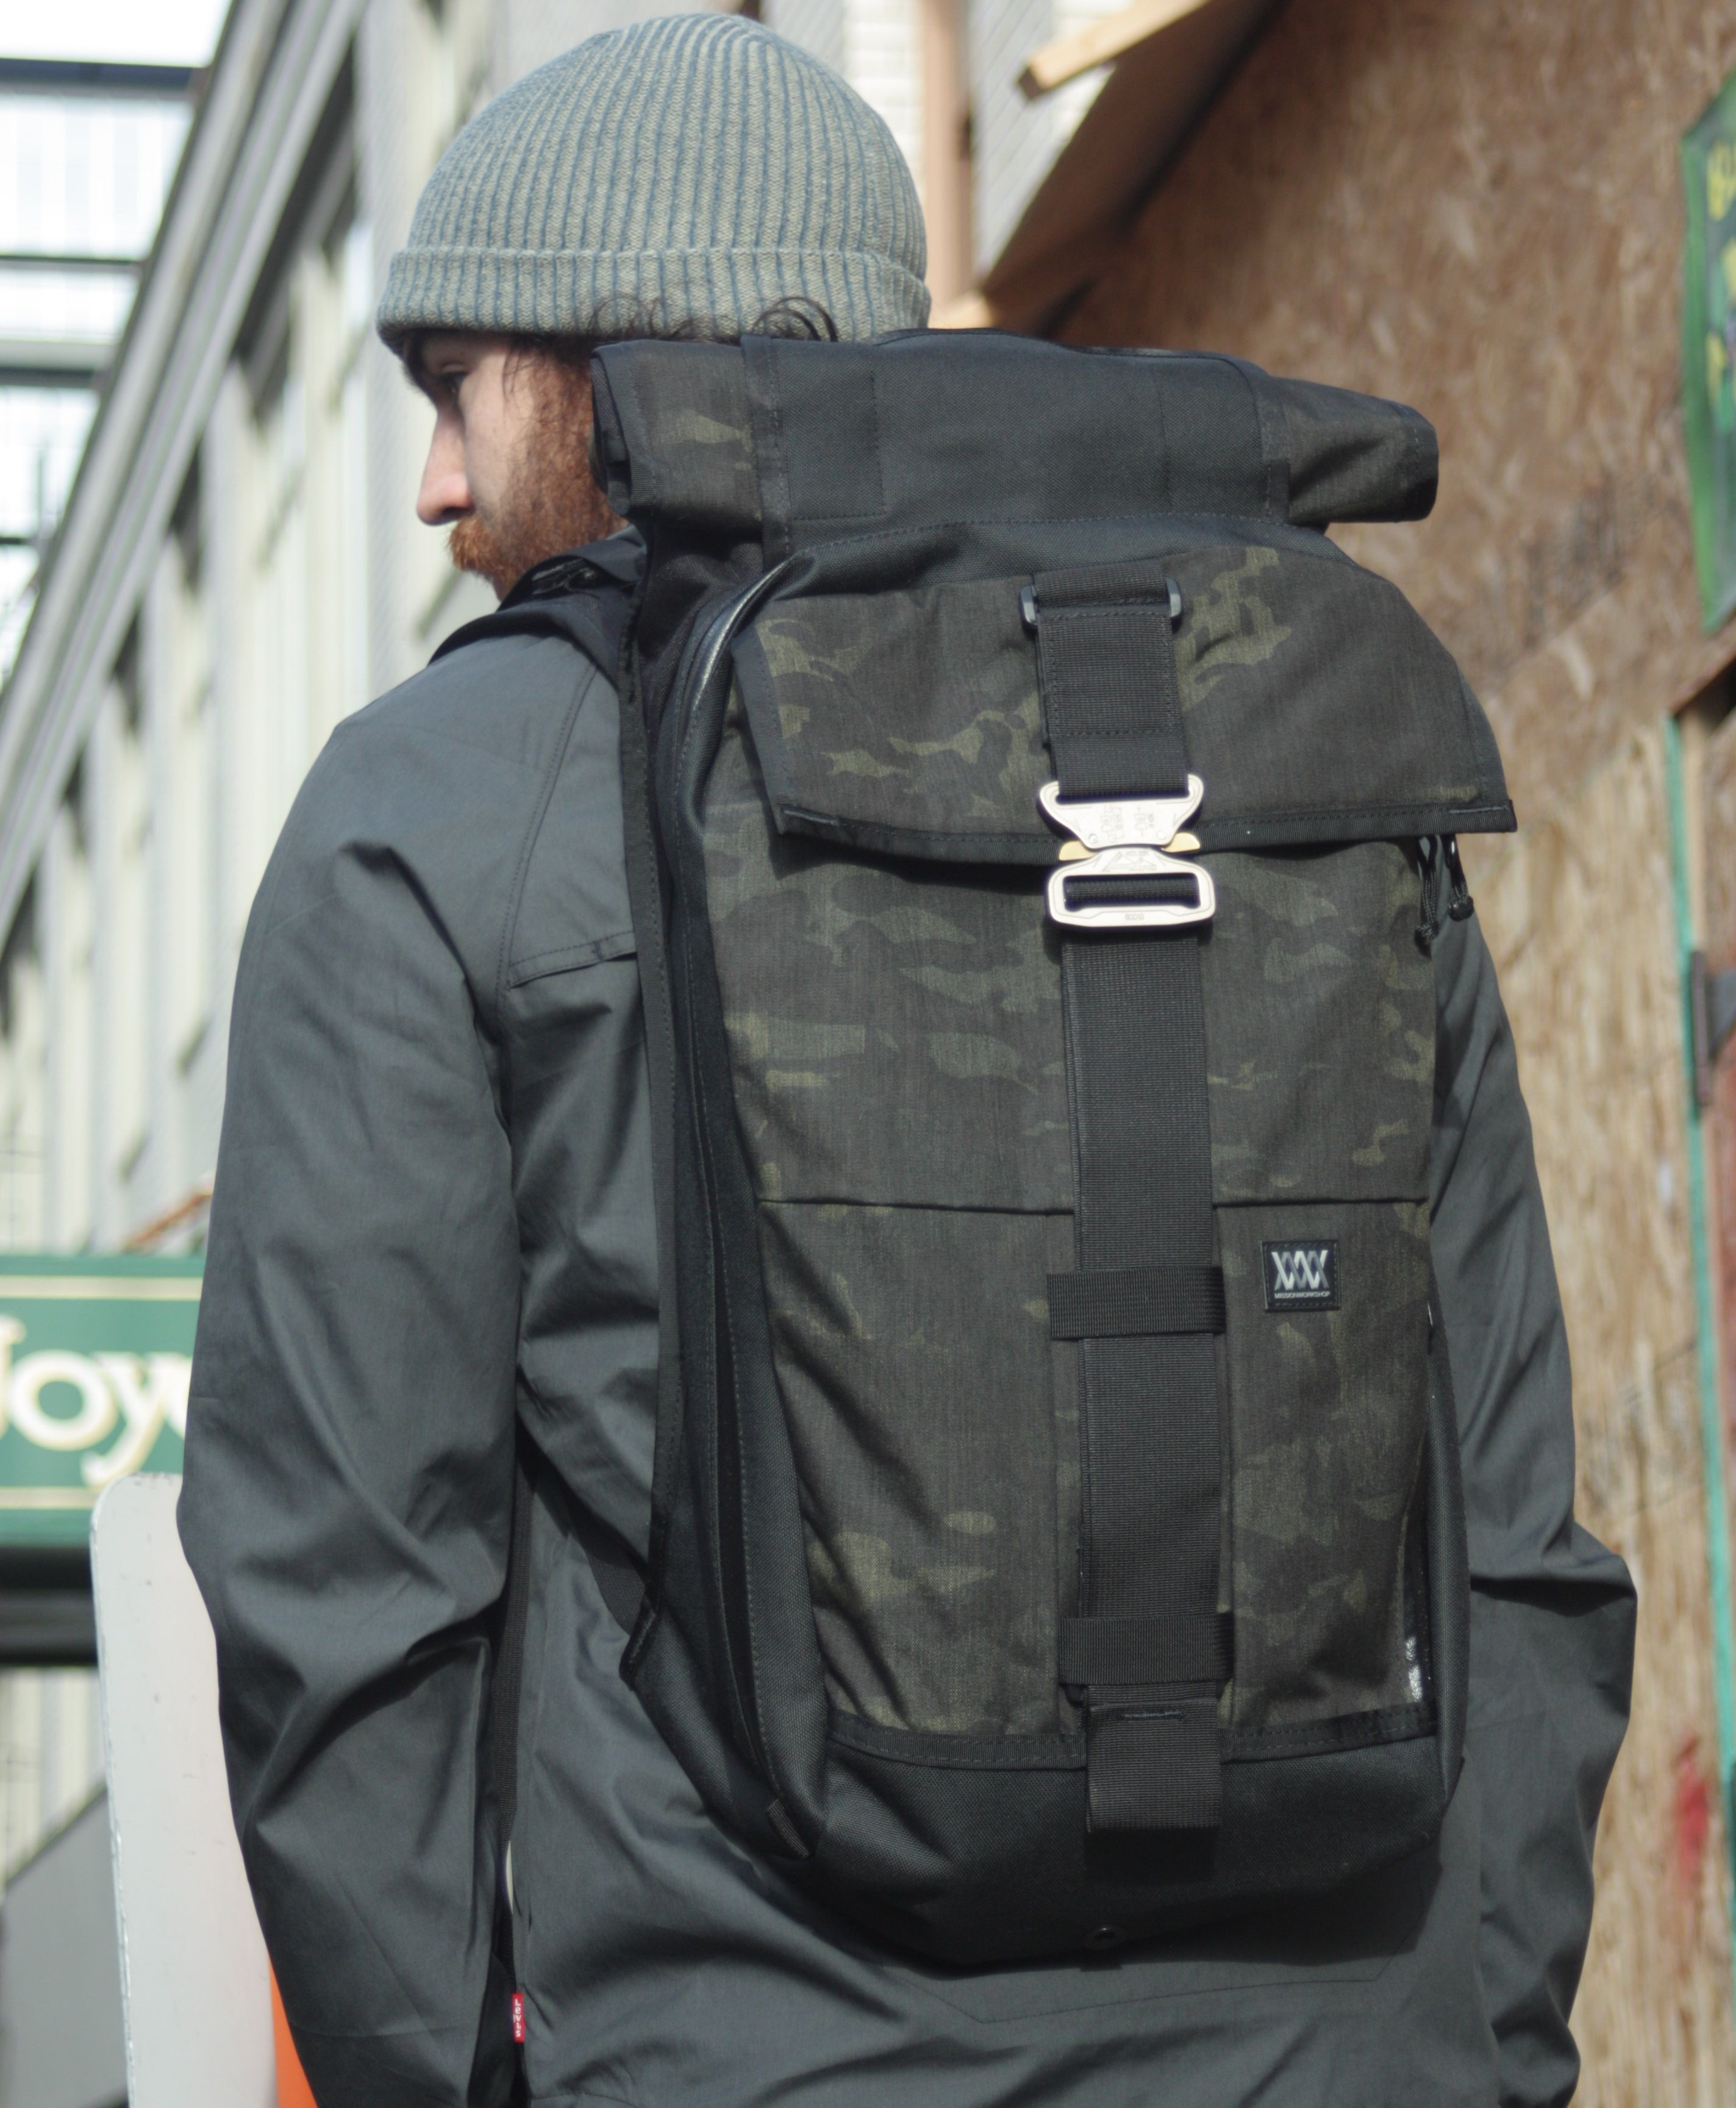 f8739f0064f The US made Limited Edition black camo Rambler expandable backpack from Mission  Workshop comes with a fine looking buckle from Austrian manufacturer ...